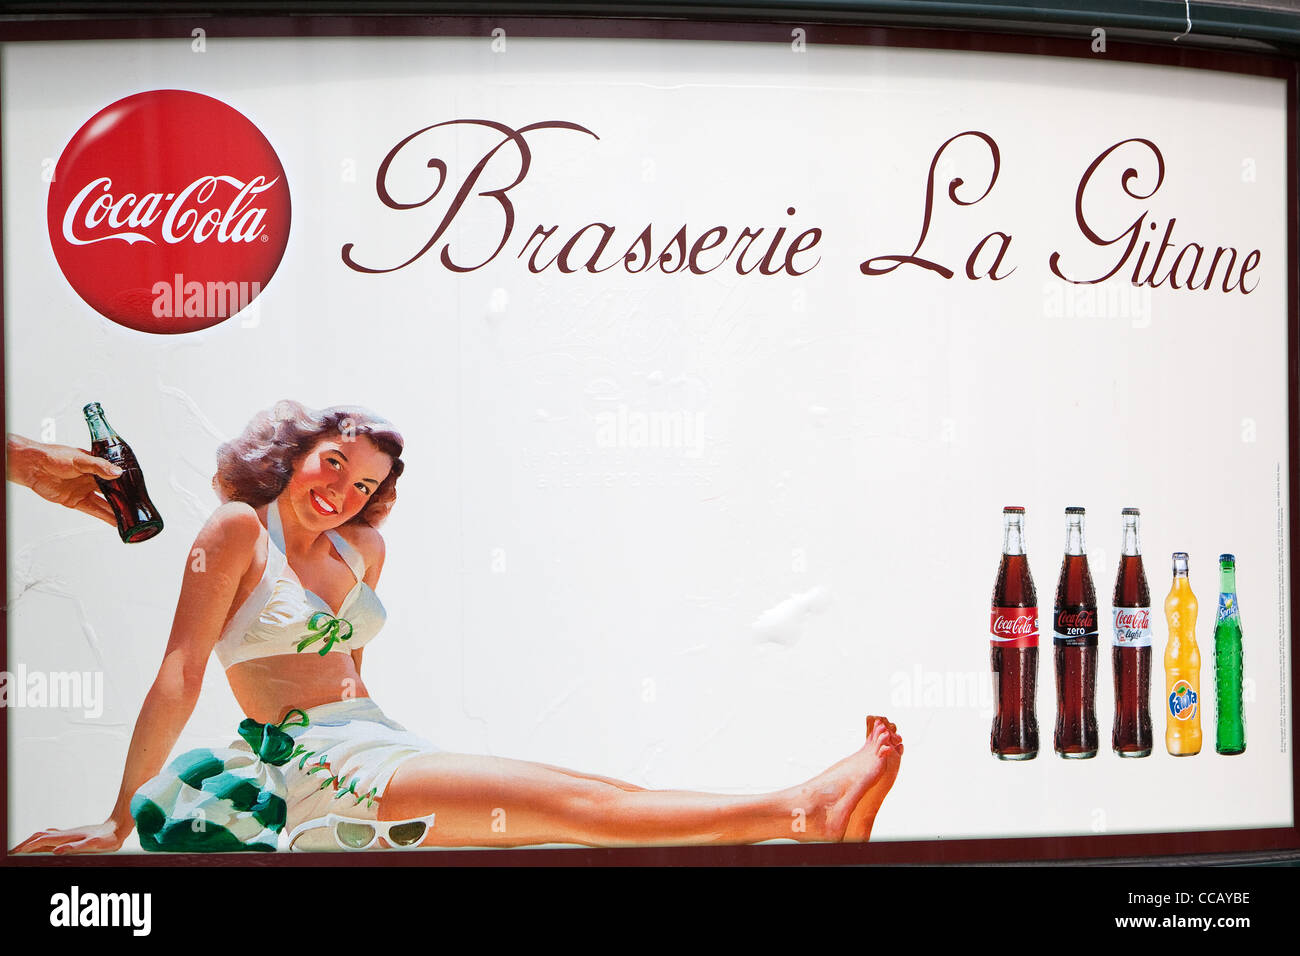 vintage advertising for coca cola on the seafront Toulon France - Stock Image